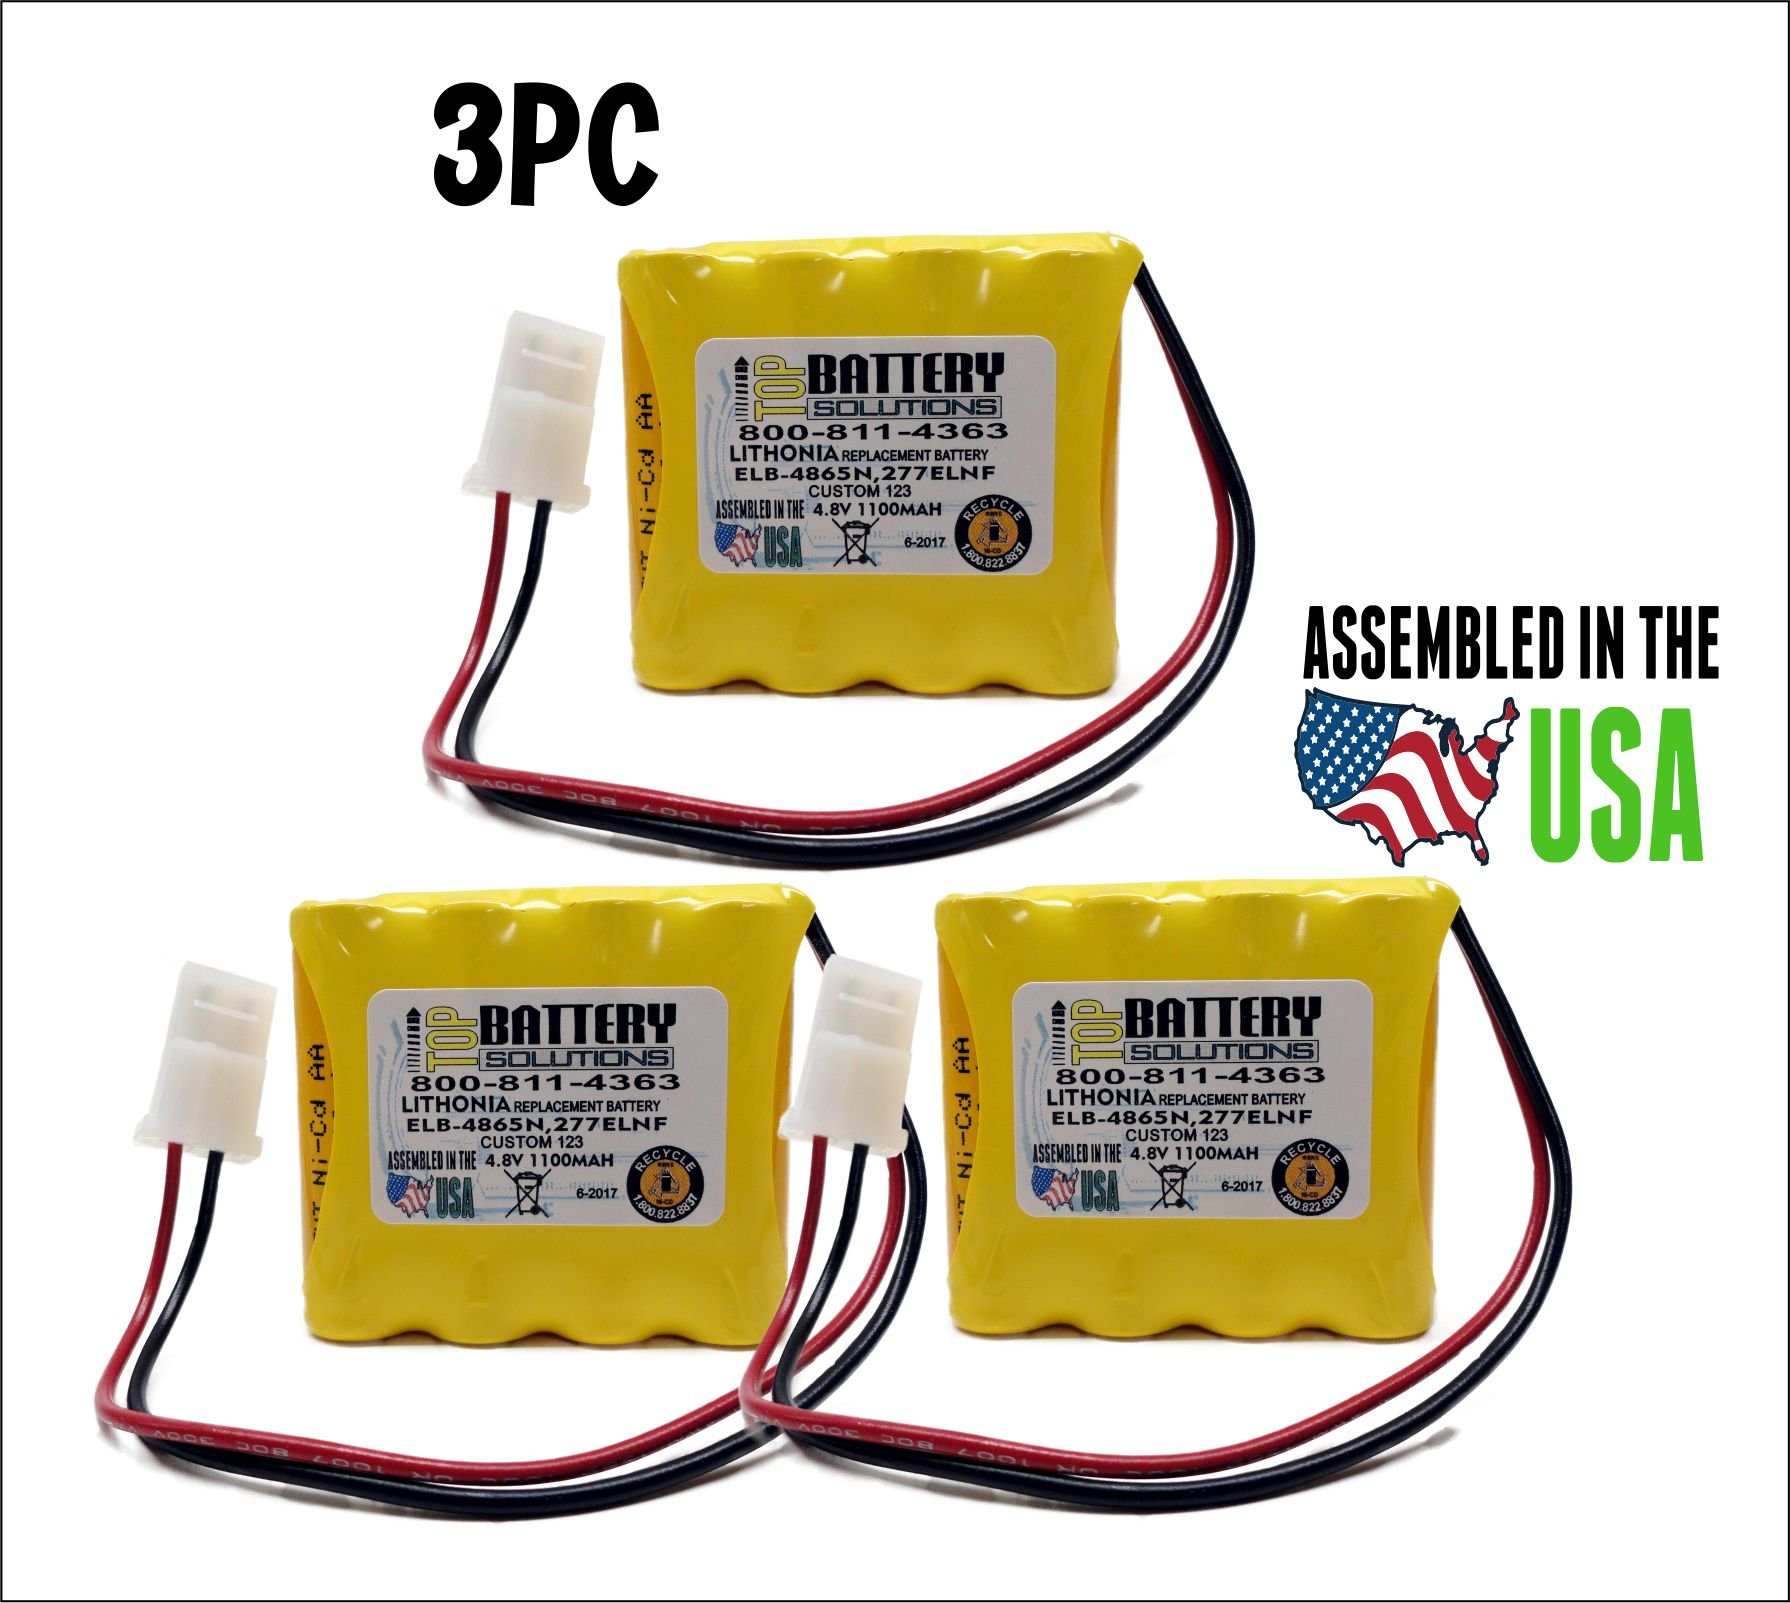 3PC Lithonia 277ELNF ELB-4865N ELB4865N REPLACEMENT BATTERY